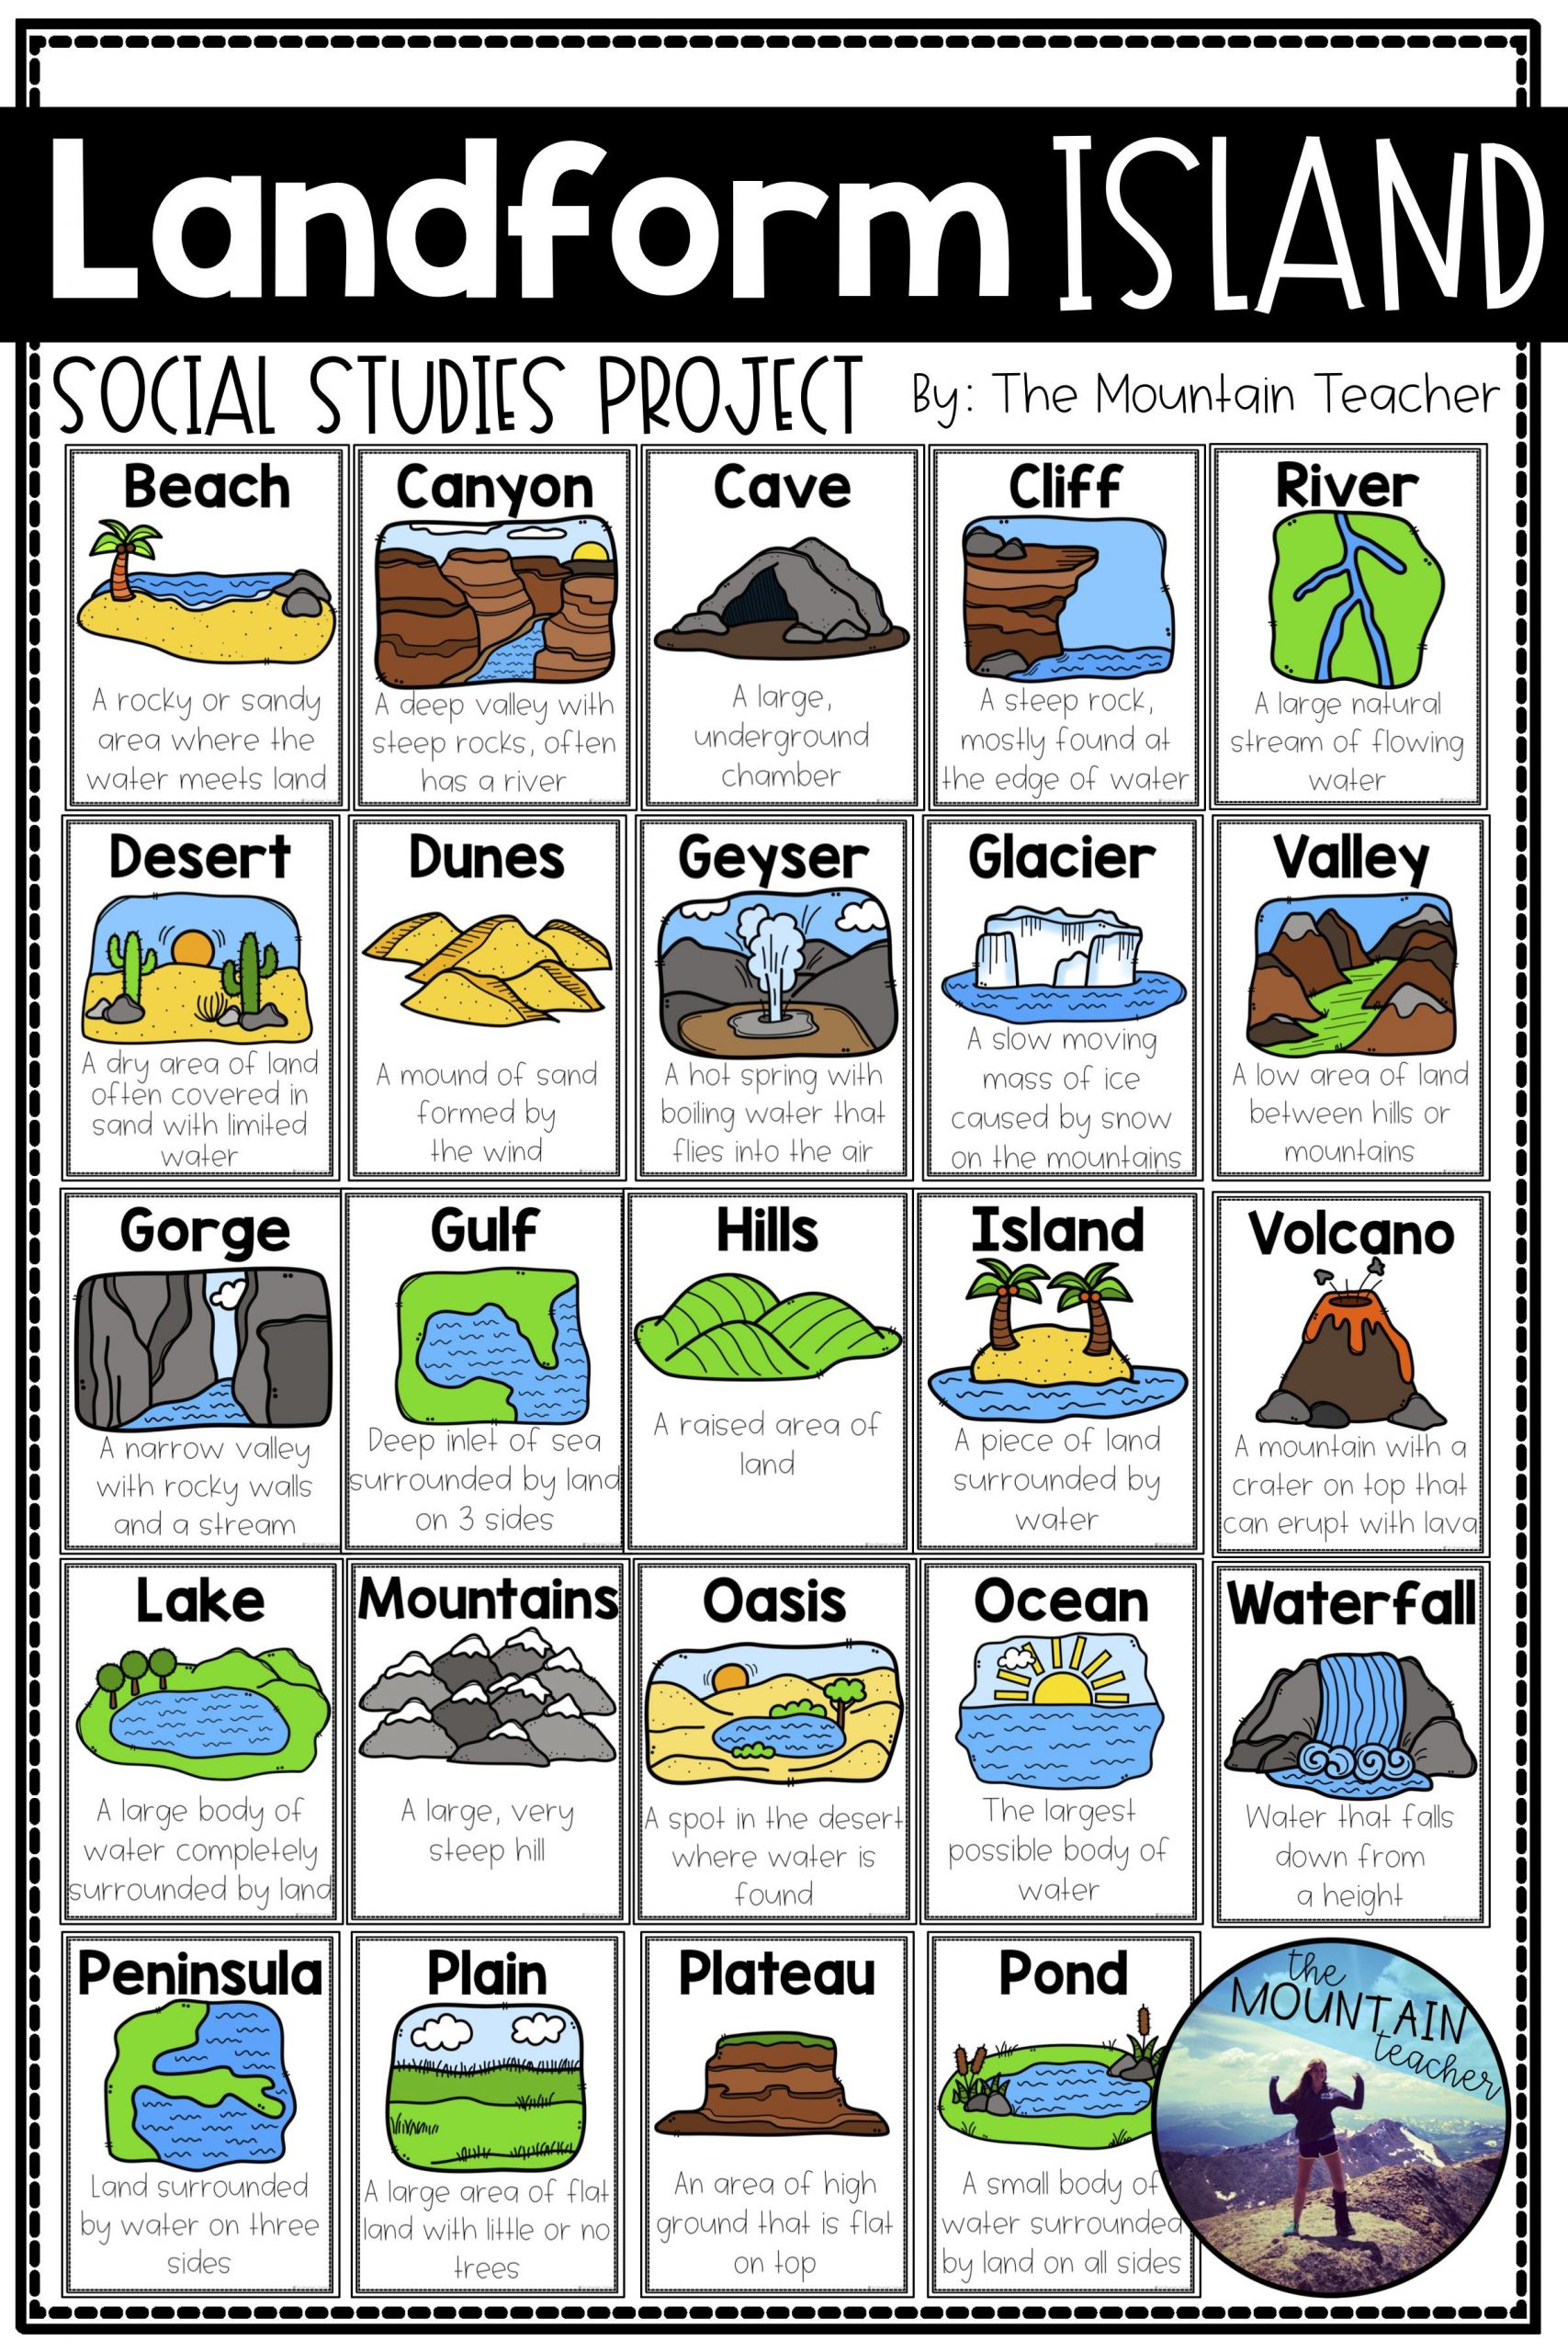 Engage your students in learning about landforms by having